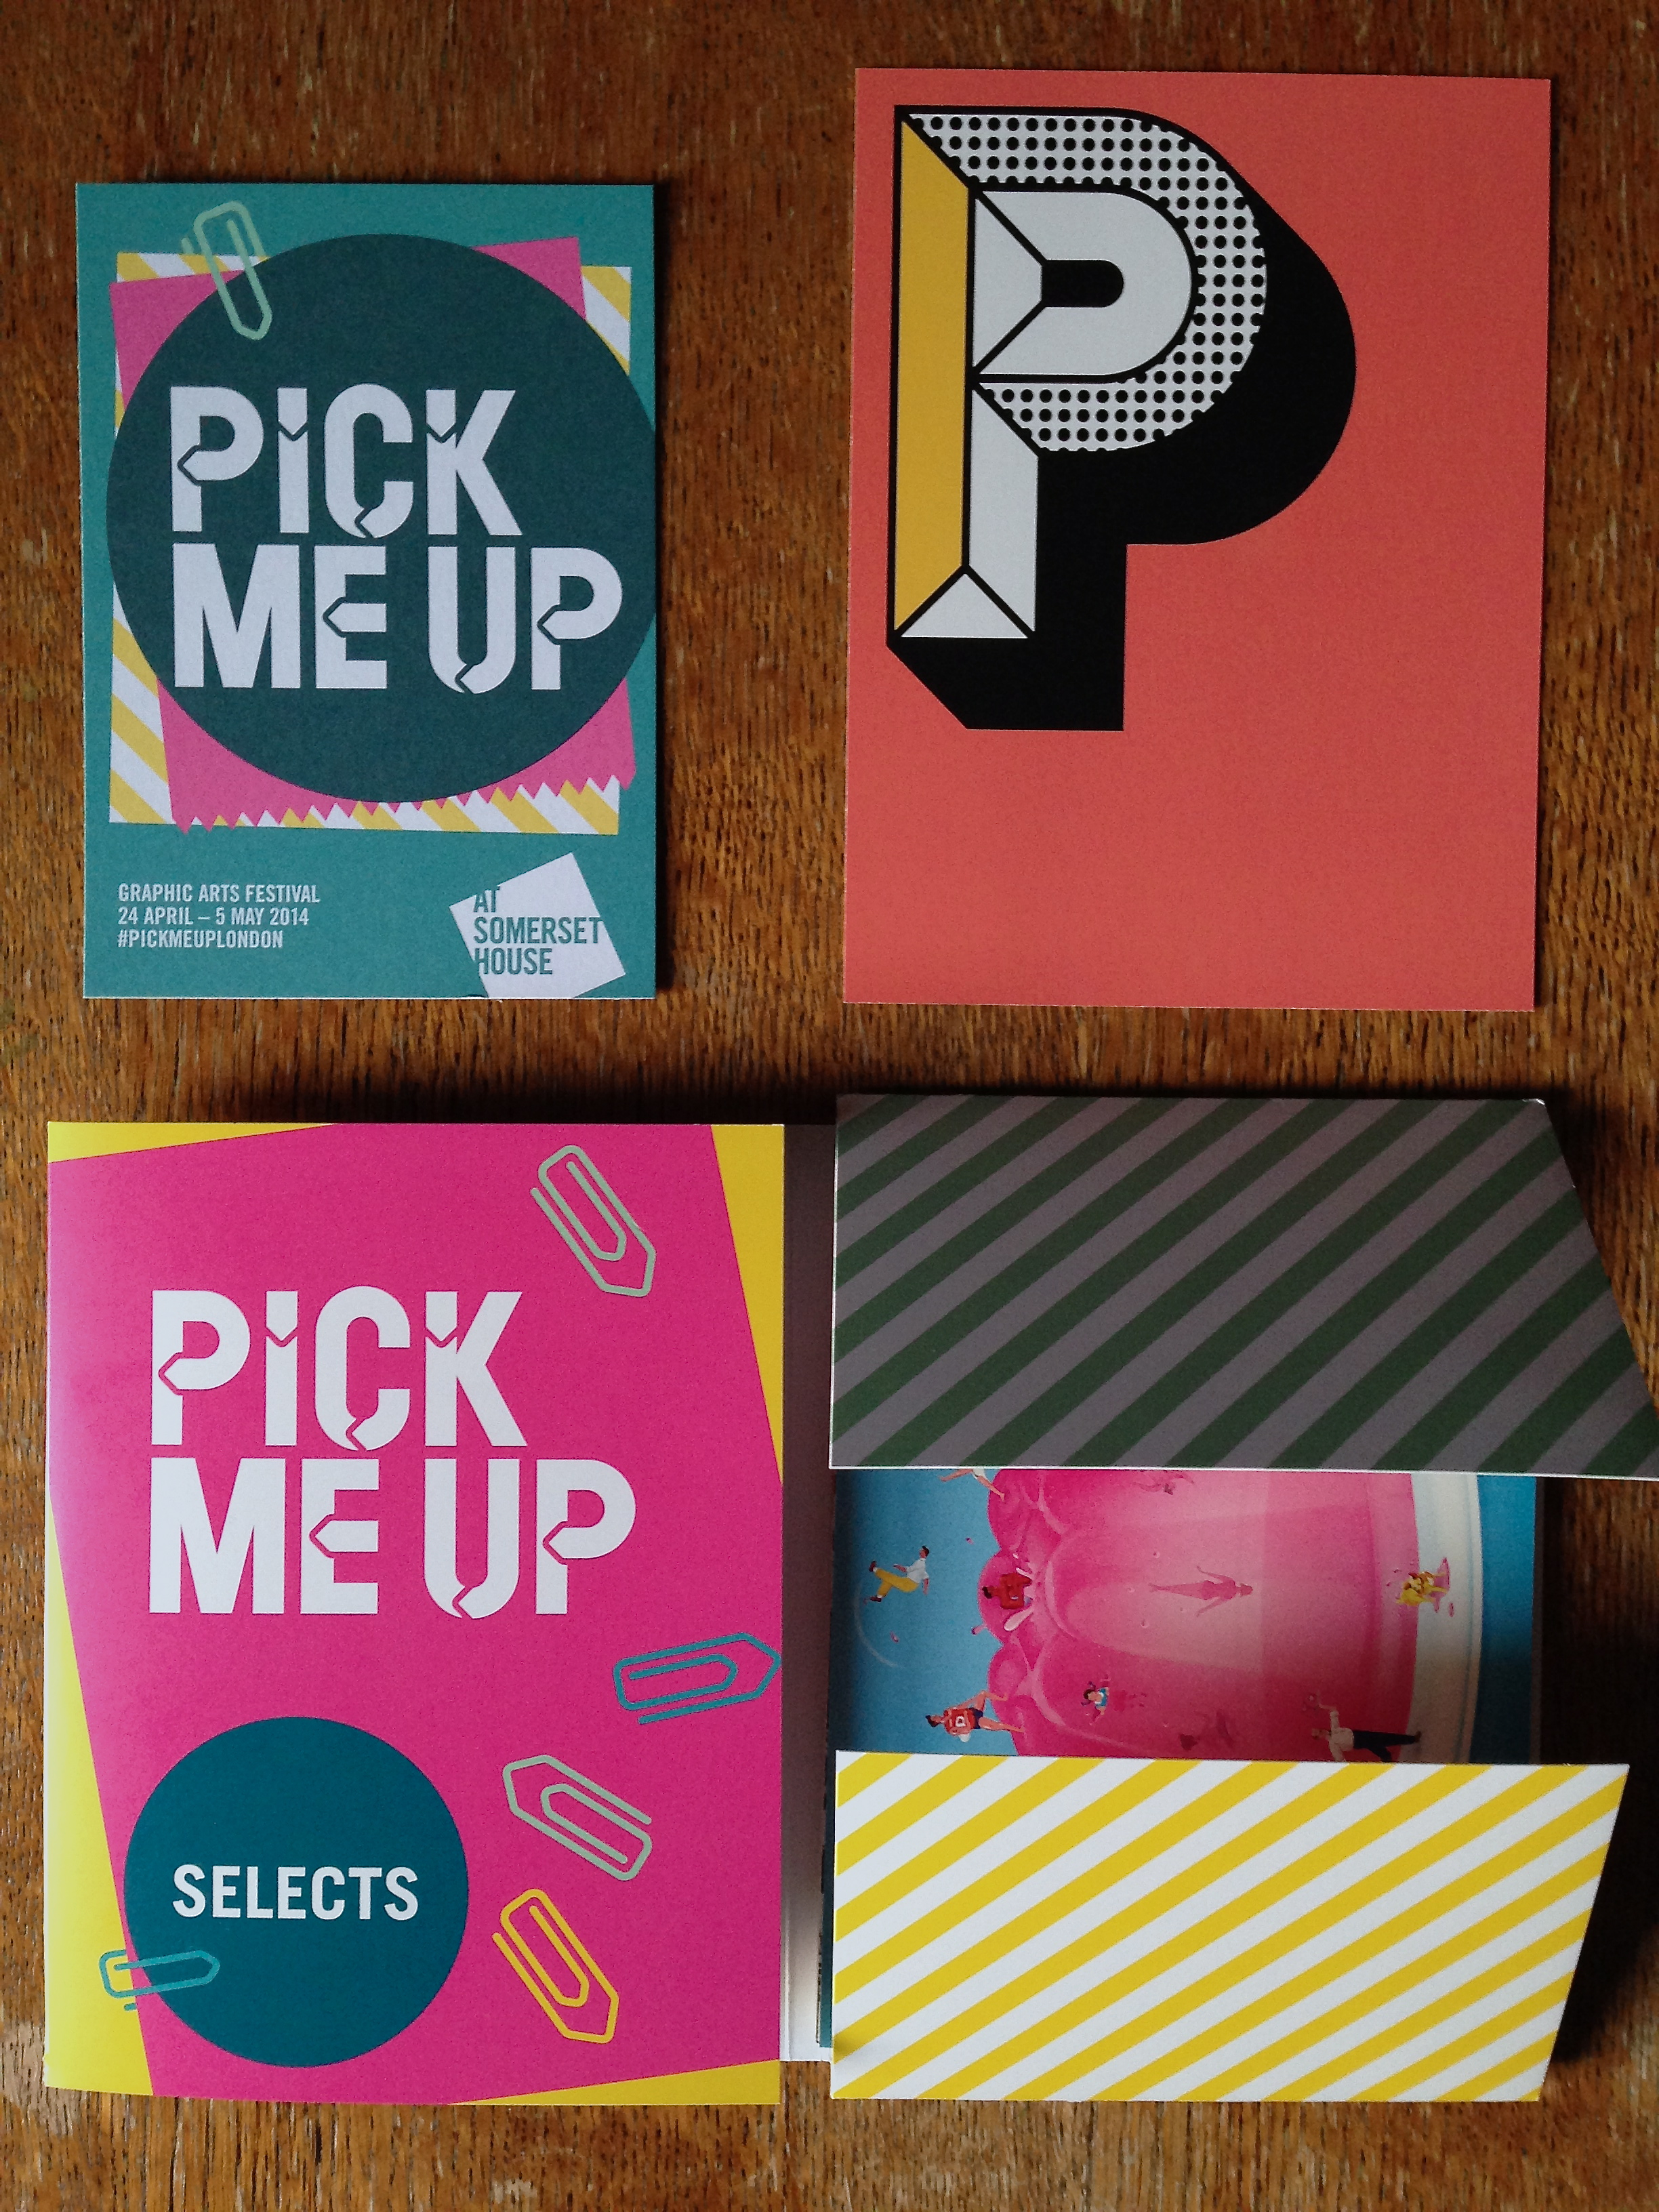 Maja Jones Blog post on Pick me up London